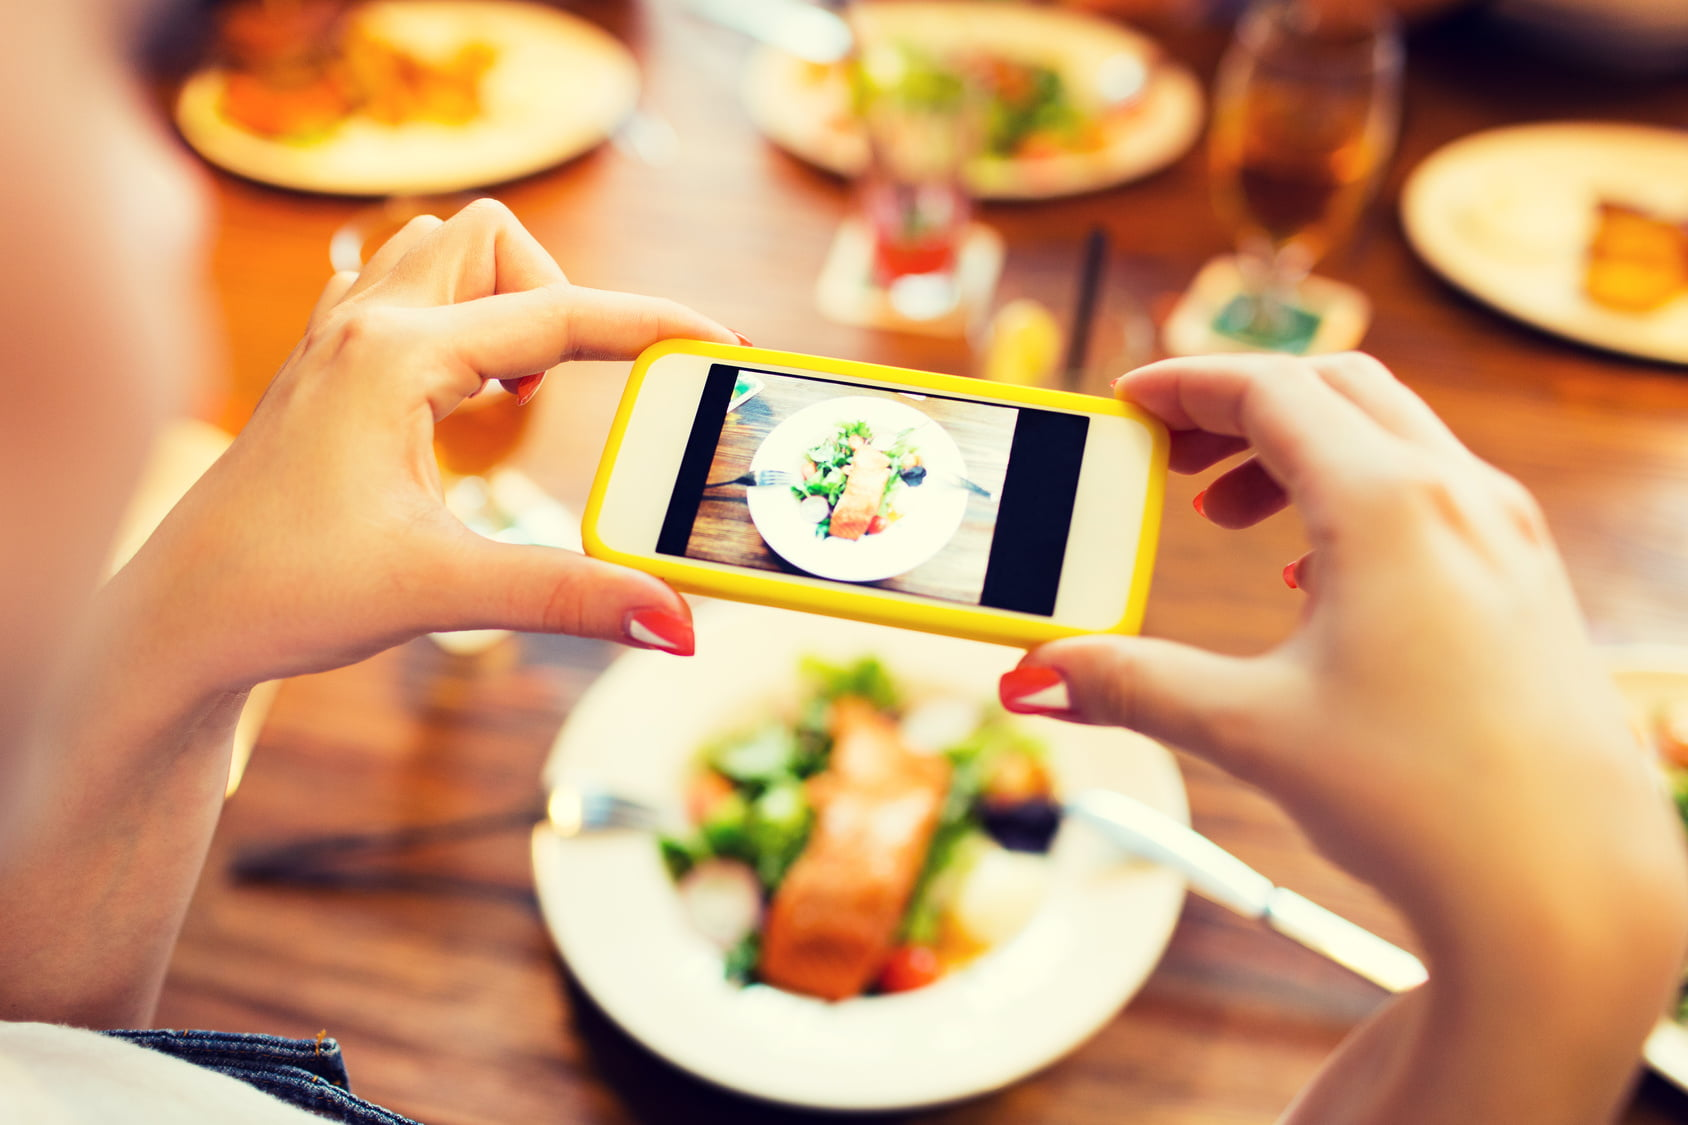 Taking a picture of food with smartphone